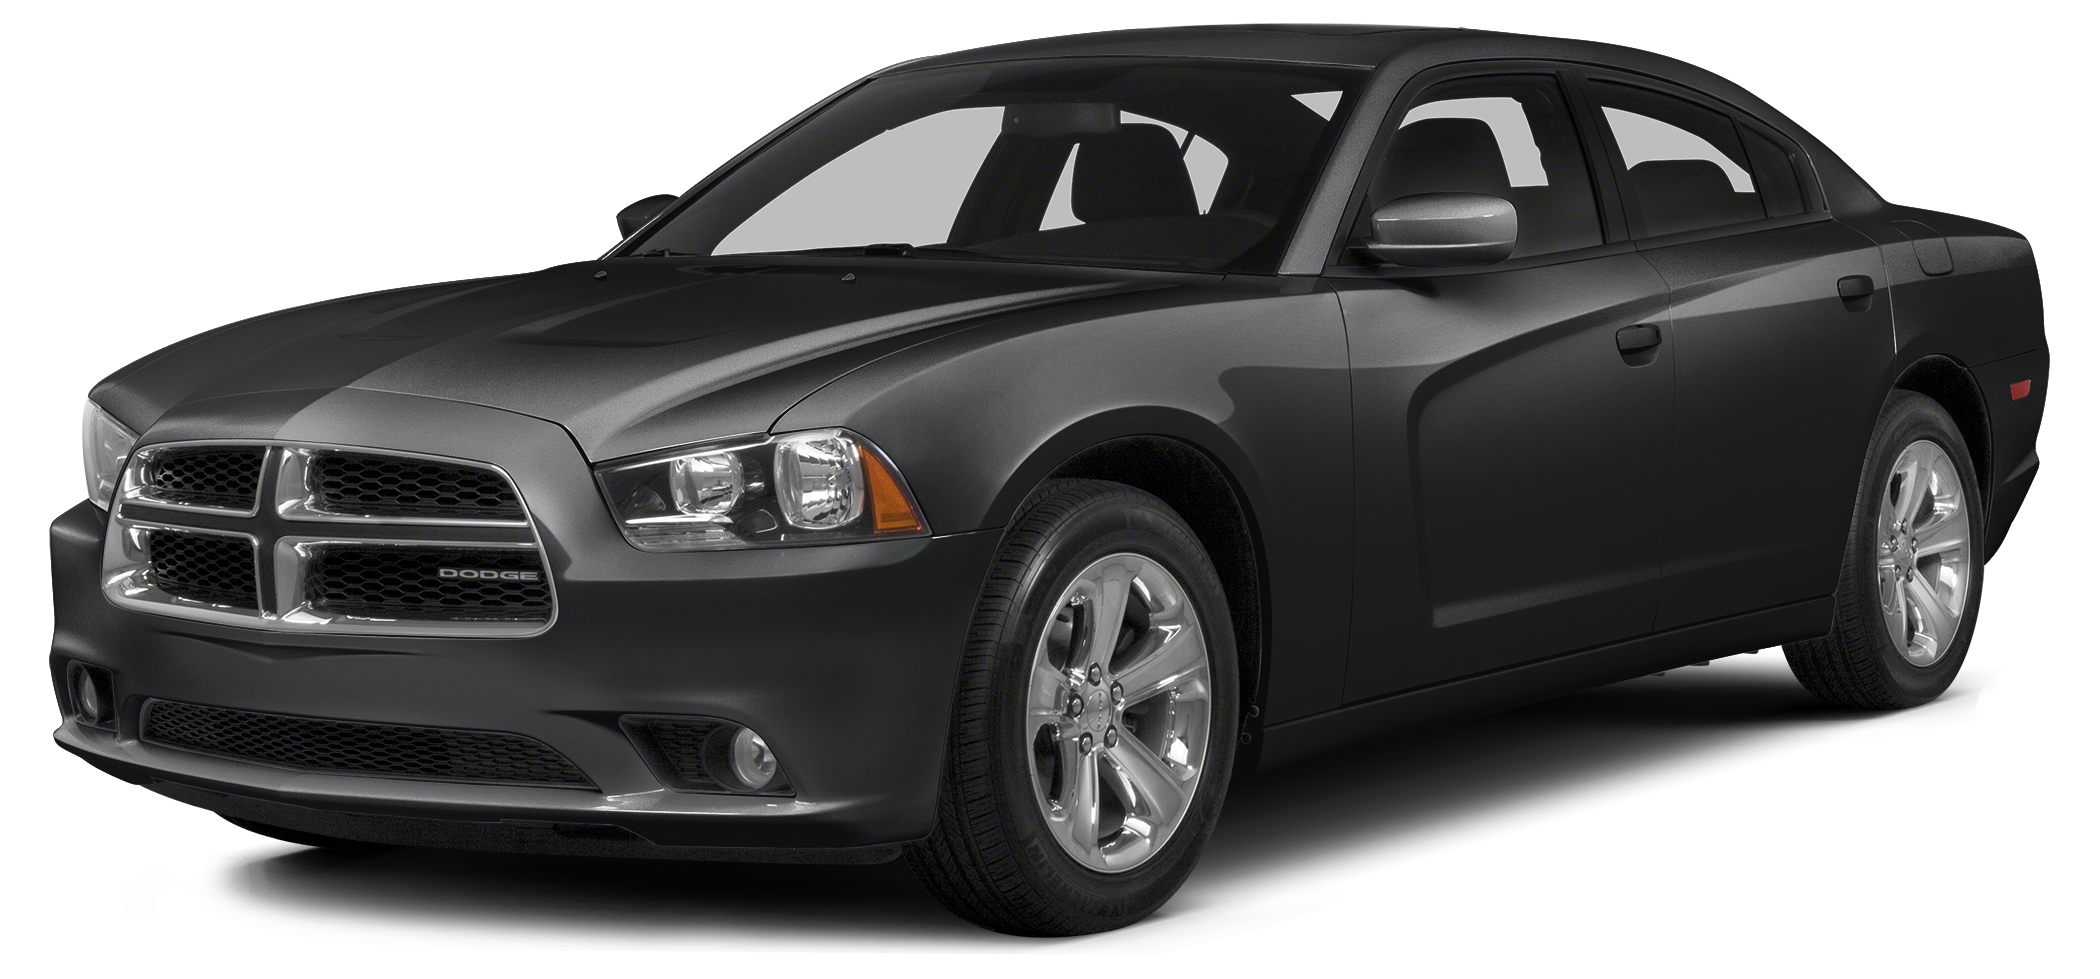 2014 Dodge Charger RT DISCLAIMER We are excited to offer this vehicle to you but it is currently